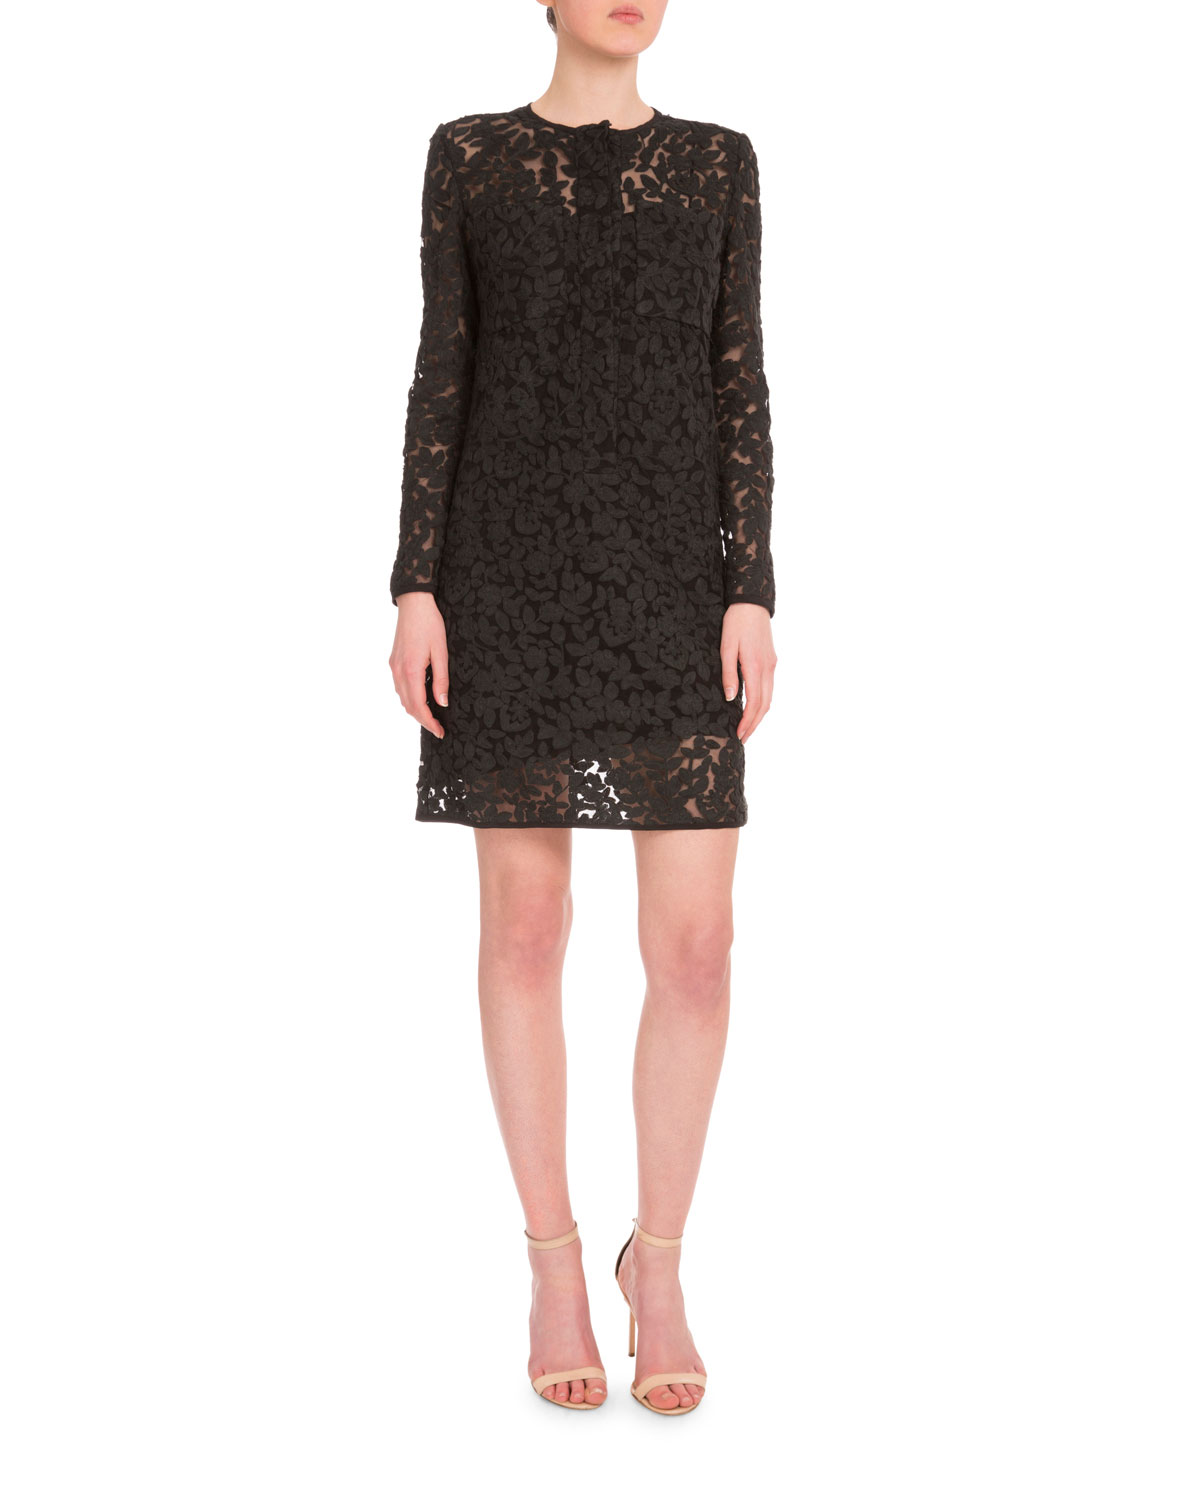 a332fcd94 Victoria by Victoria BeckhamLong-Sleeve Embroidered Shift Dress, Black